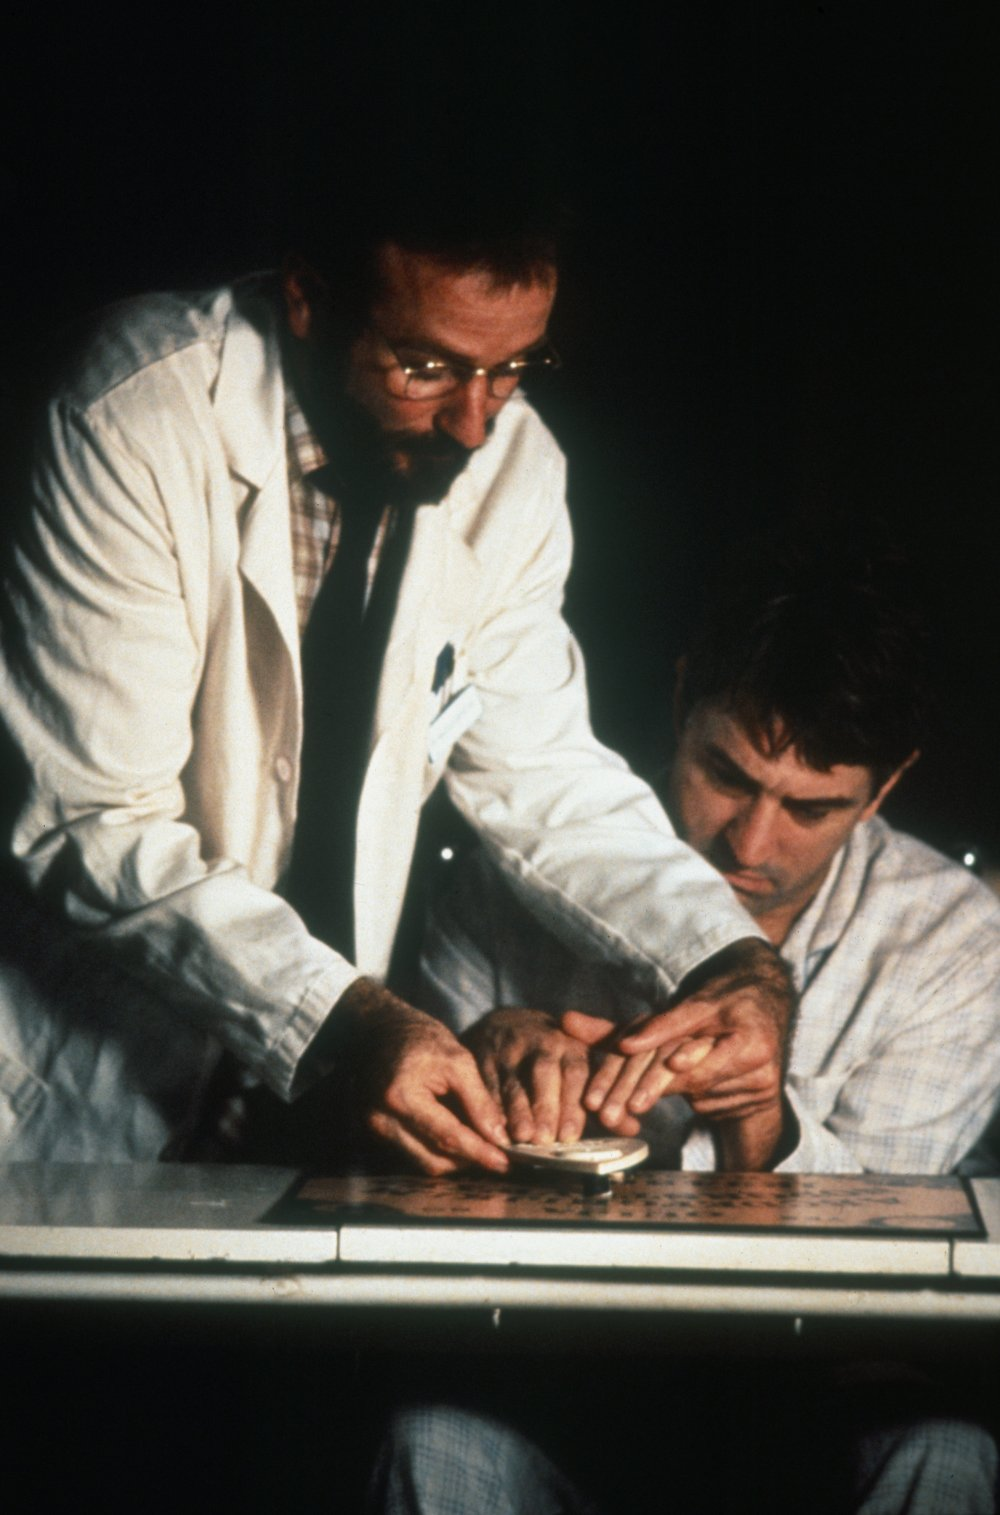 Williams was teamed with Robert De Niro in Penny Marshall's Awakenings (1990), based on a memoir by British neurologist Oliver Sacks